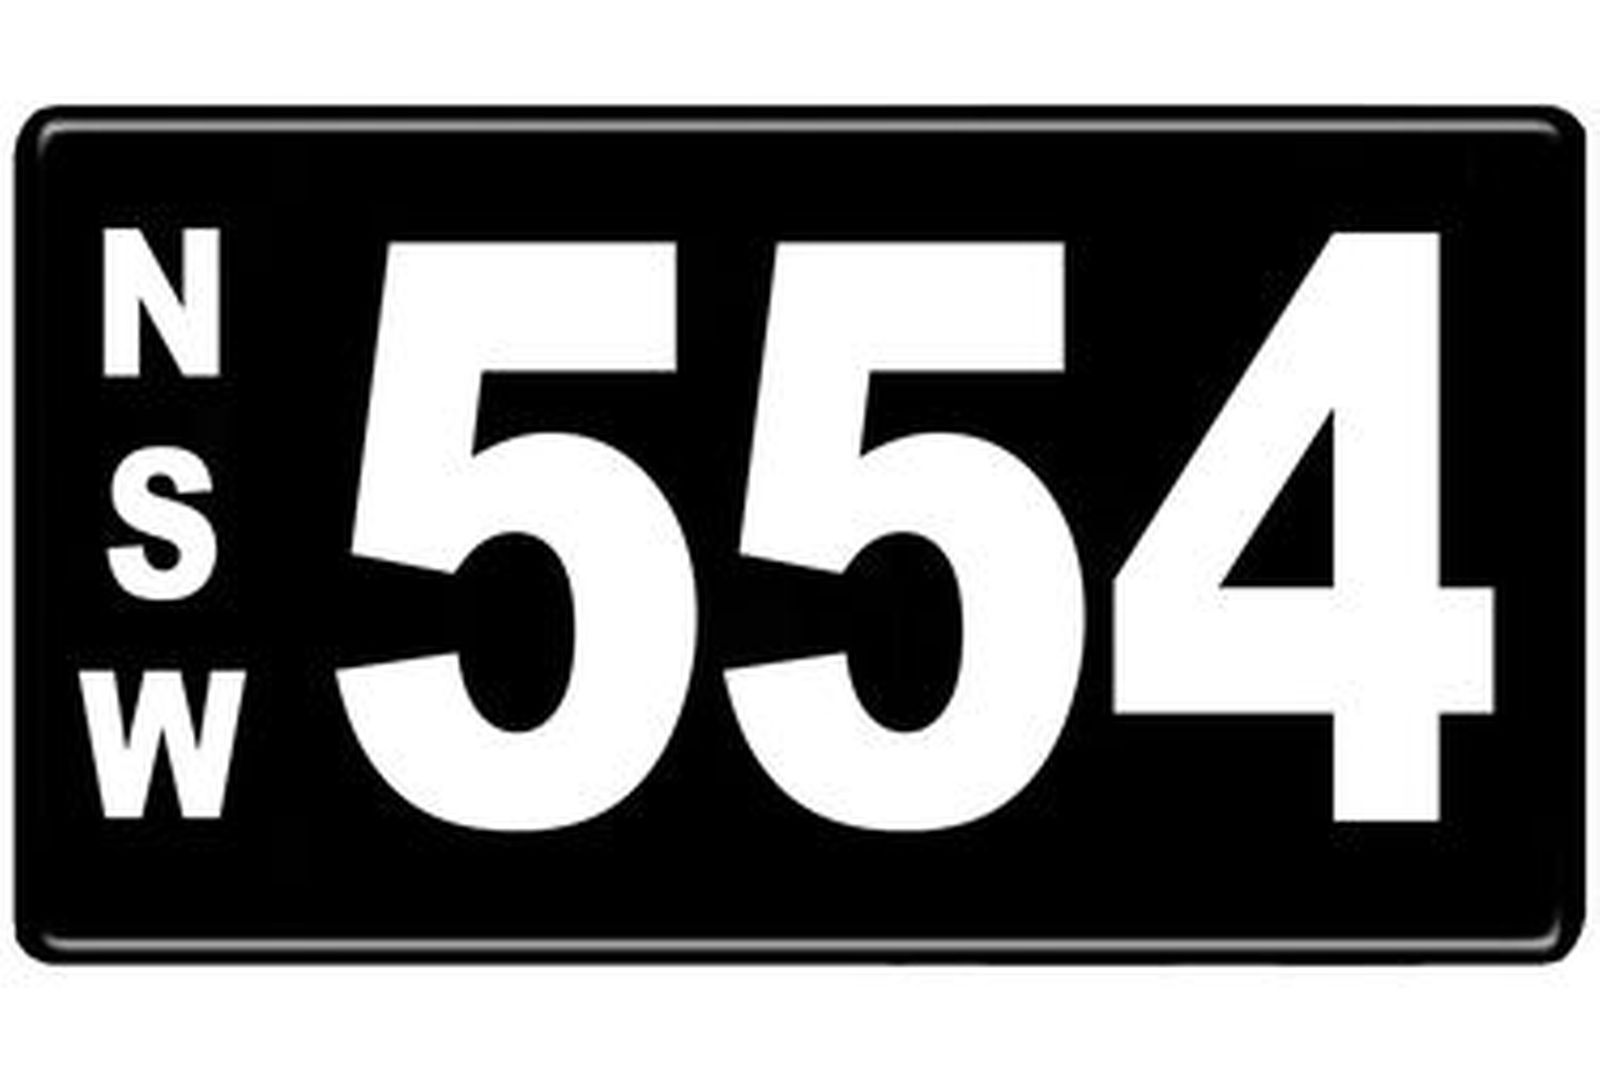 Number Plates - NSW Numerical Number Plates '554'